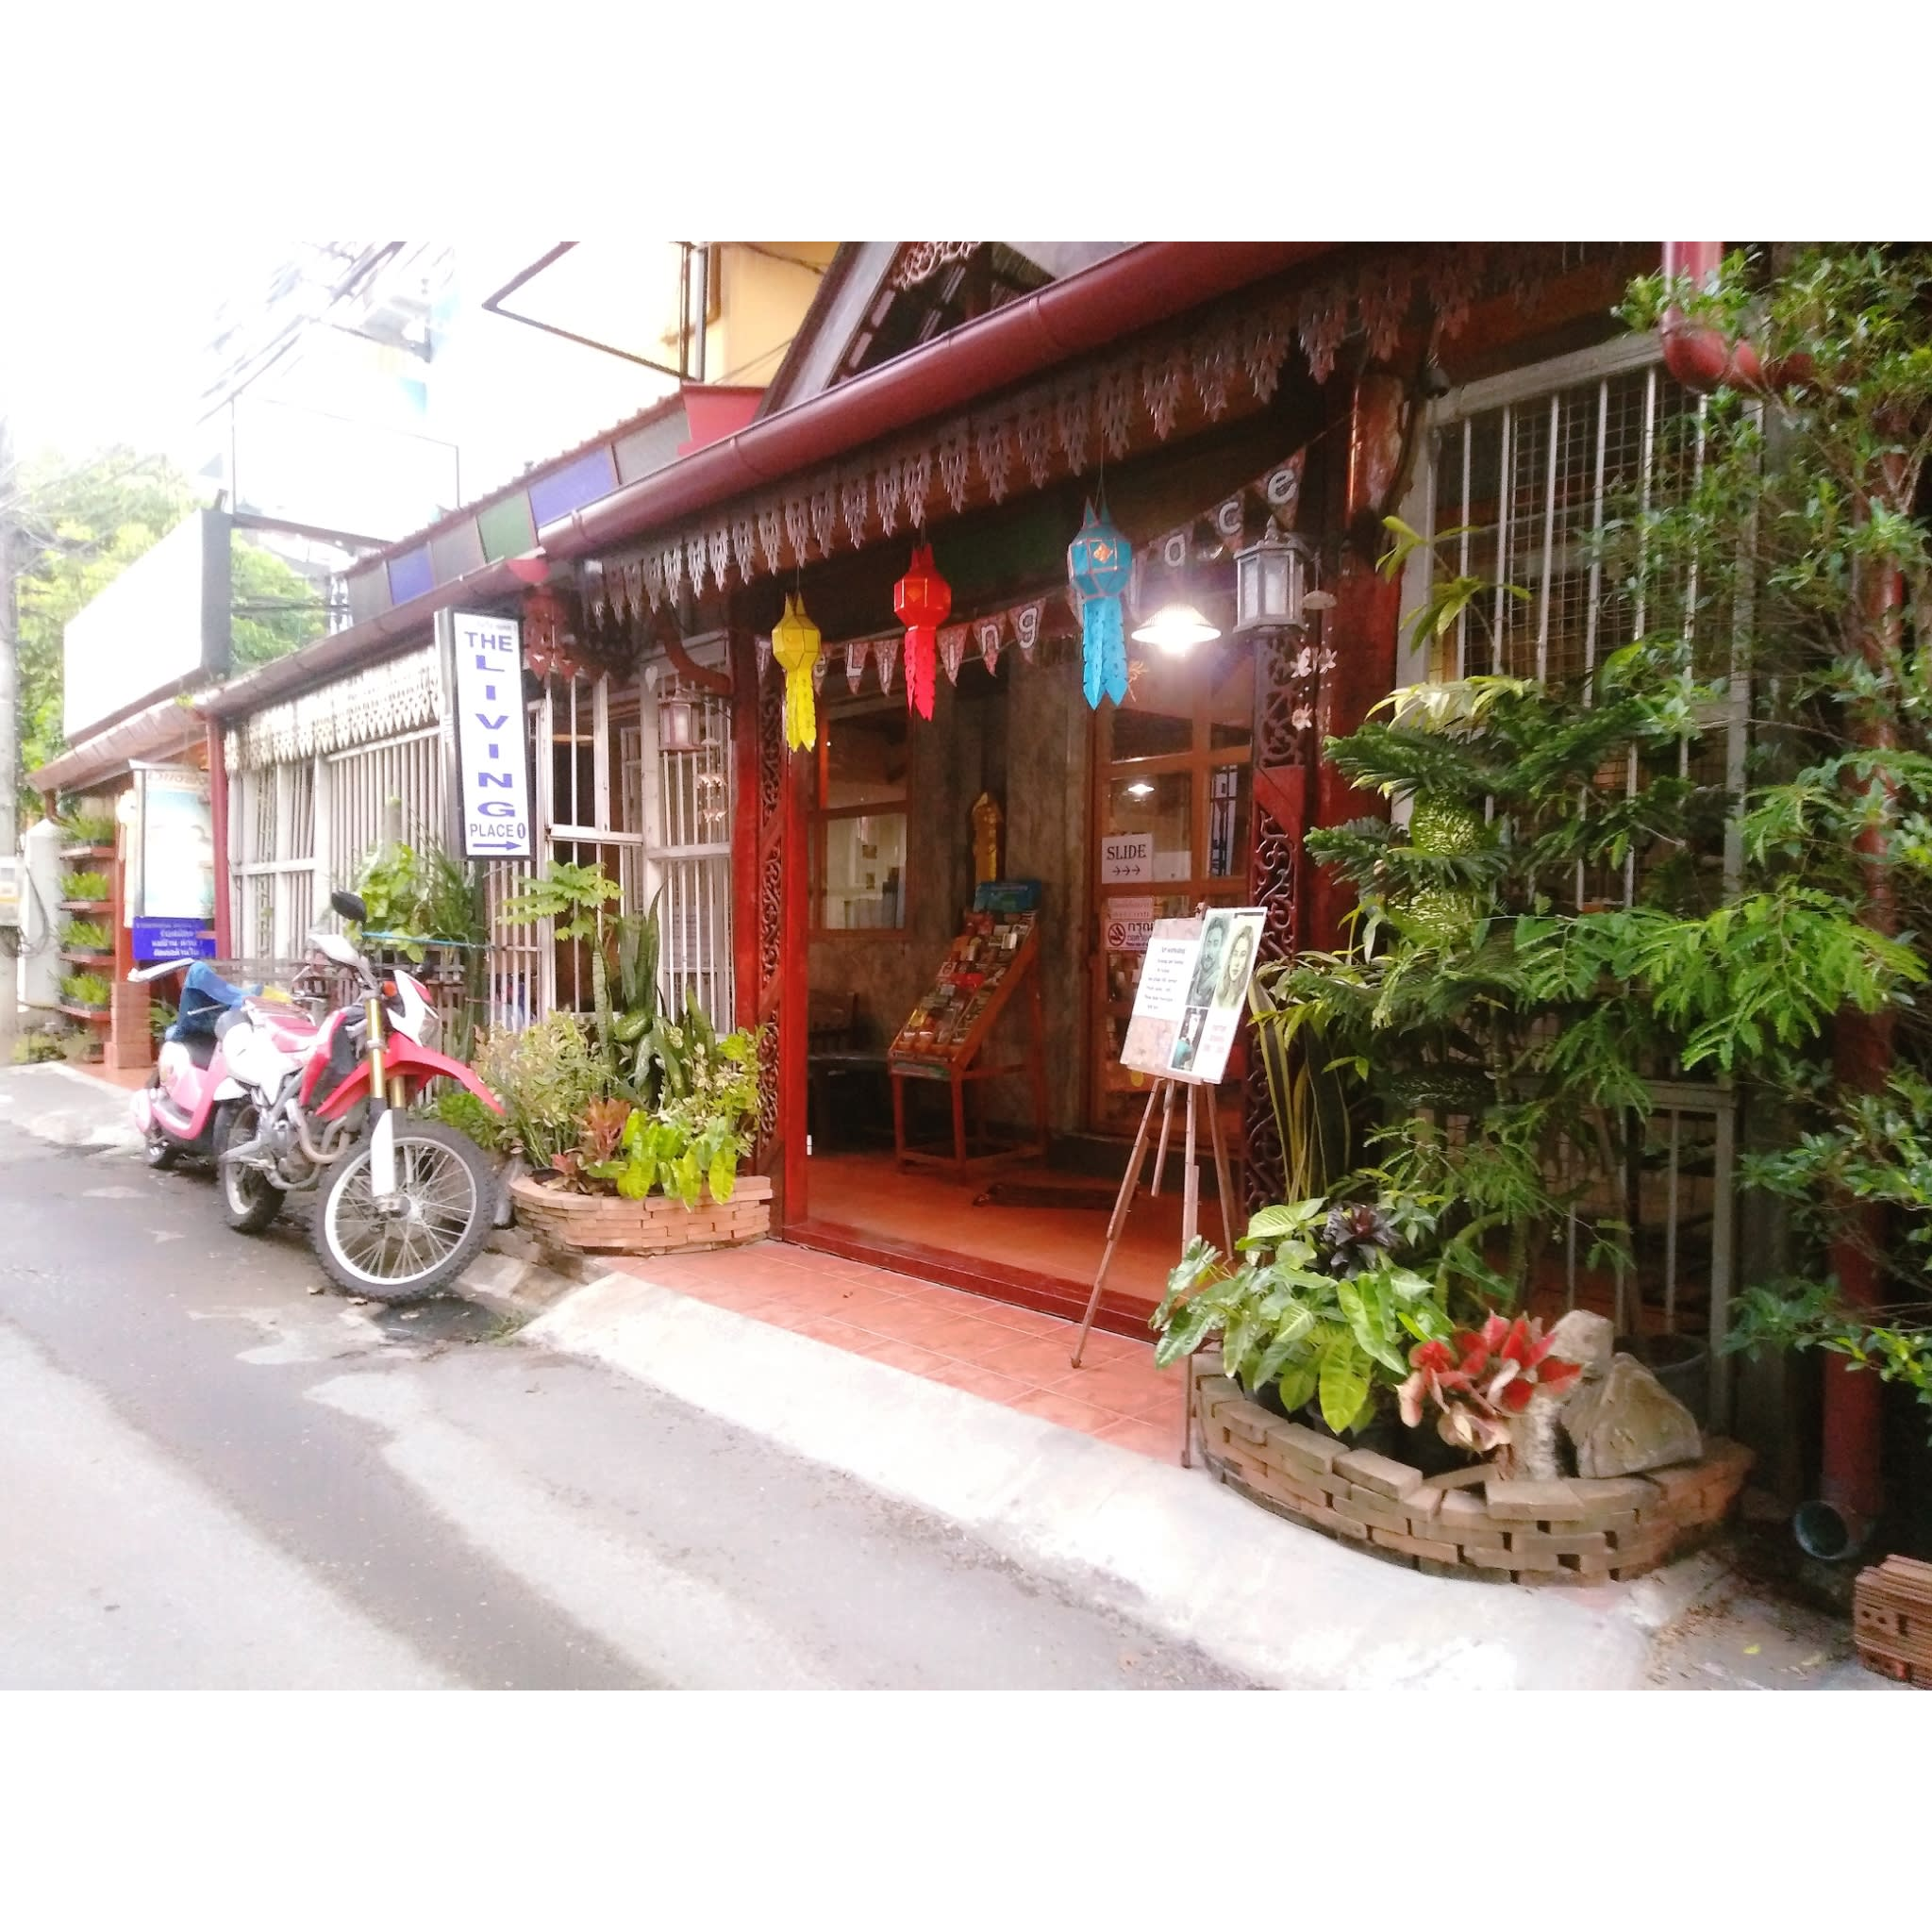 The Living Place-Chiang Mai